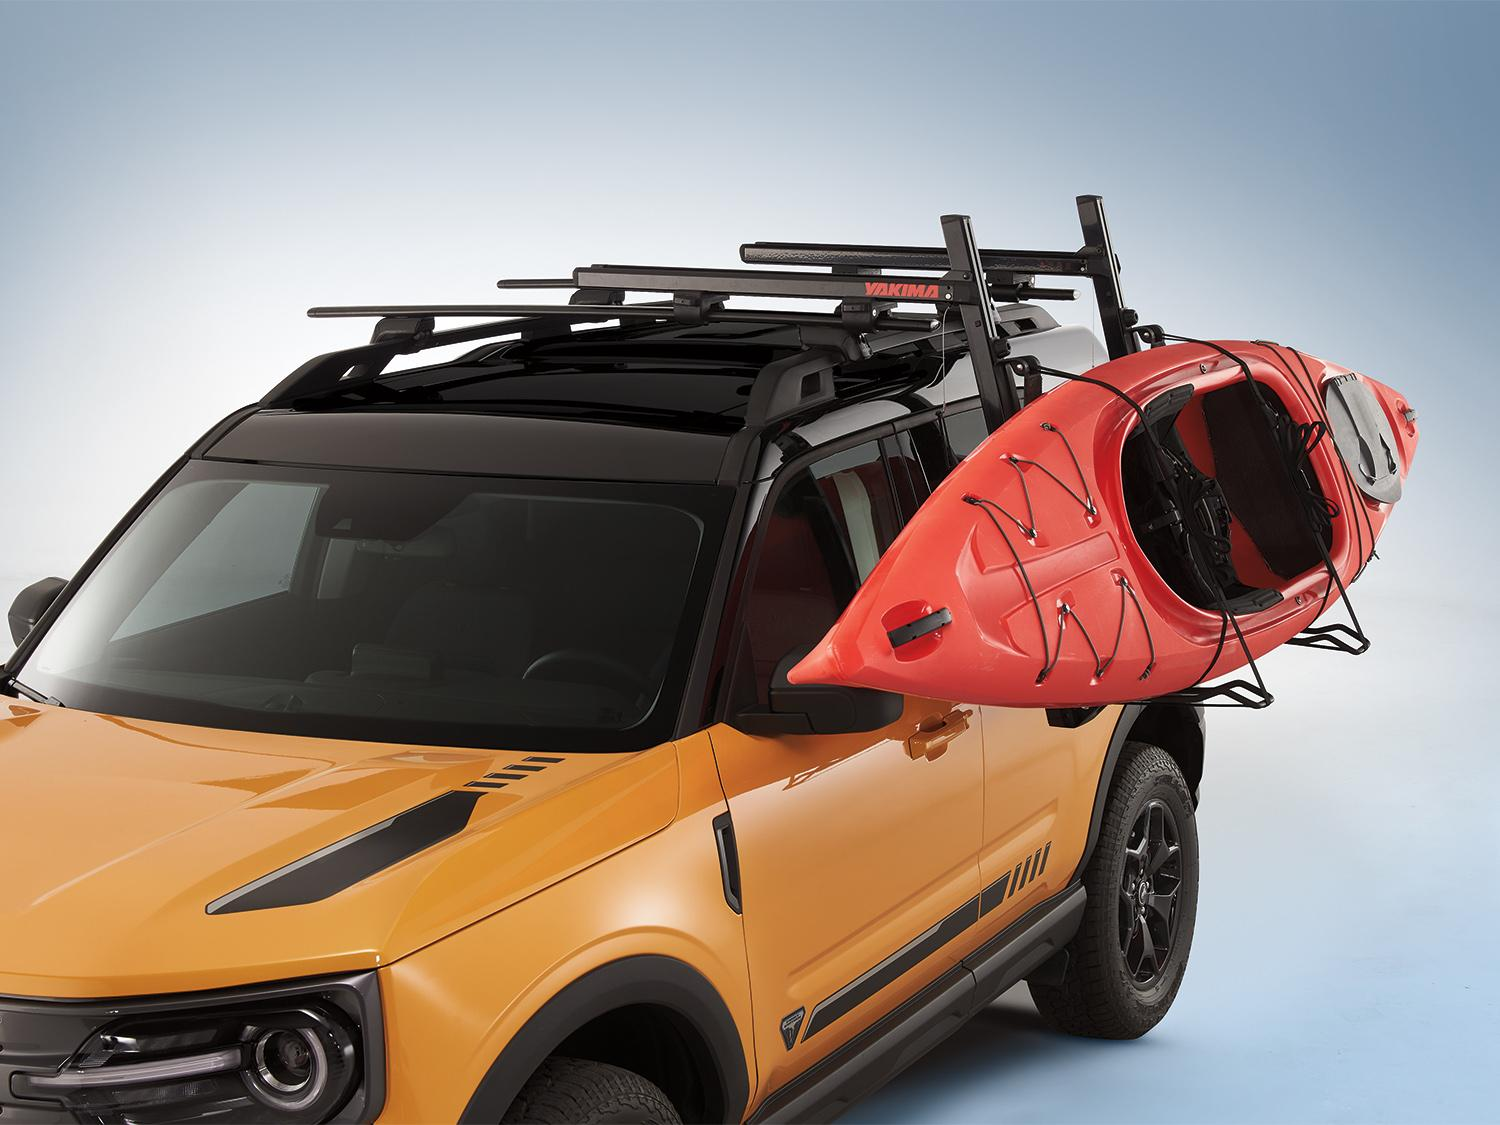 Kayak Carrier Load Assist